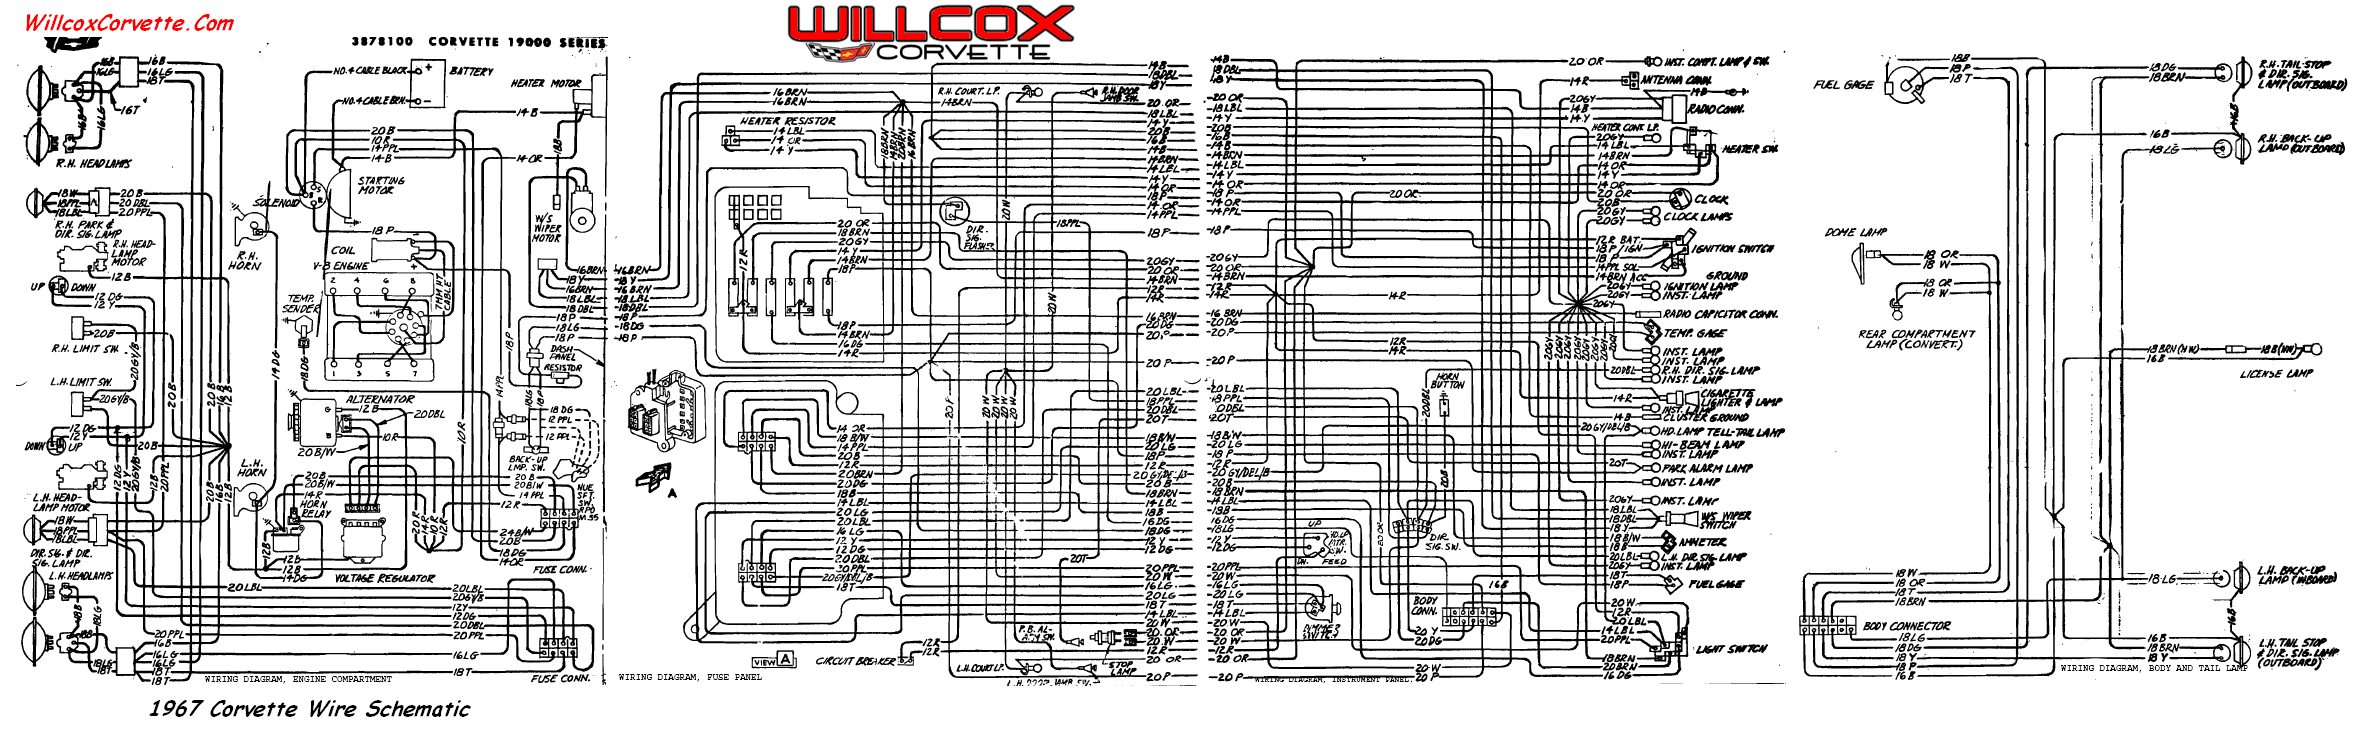 67 wire schematic for tracing wires c3 corvette wiring diagram radio wiring diagram \u2022 wiring diagrams 1977 corvette wiring diagram at gsmportal.co